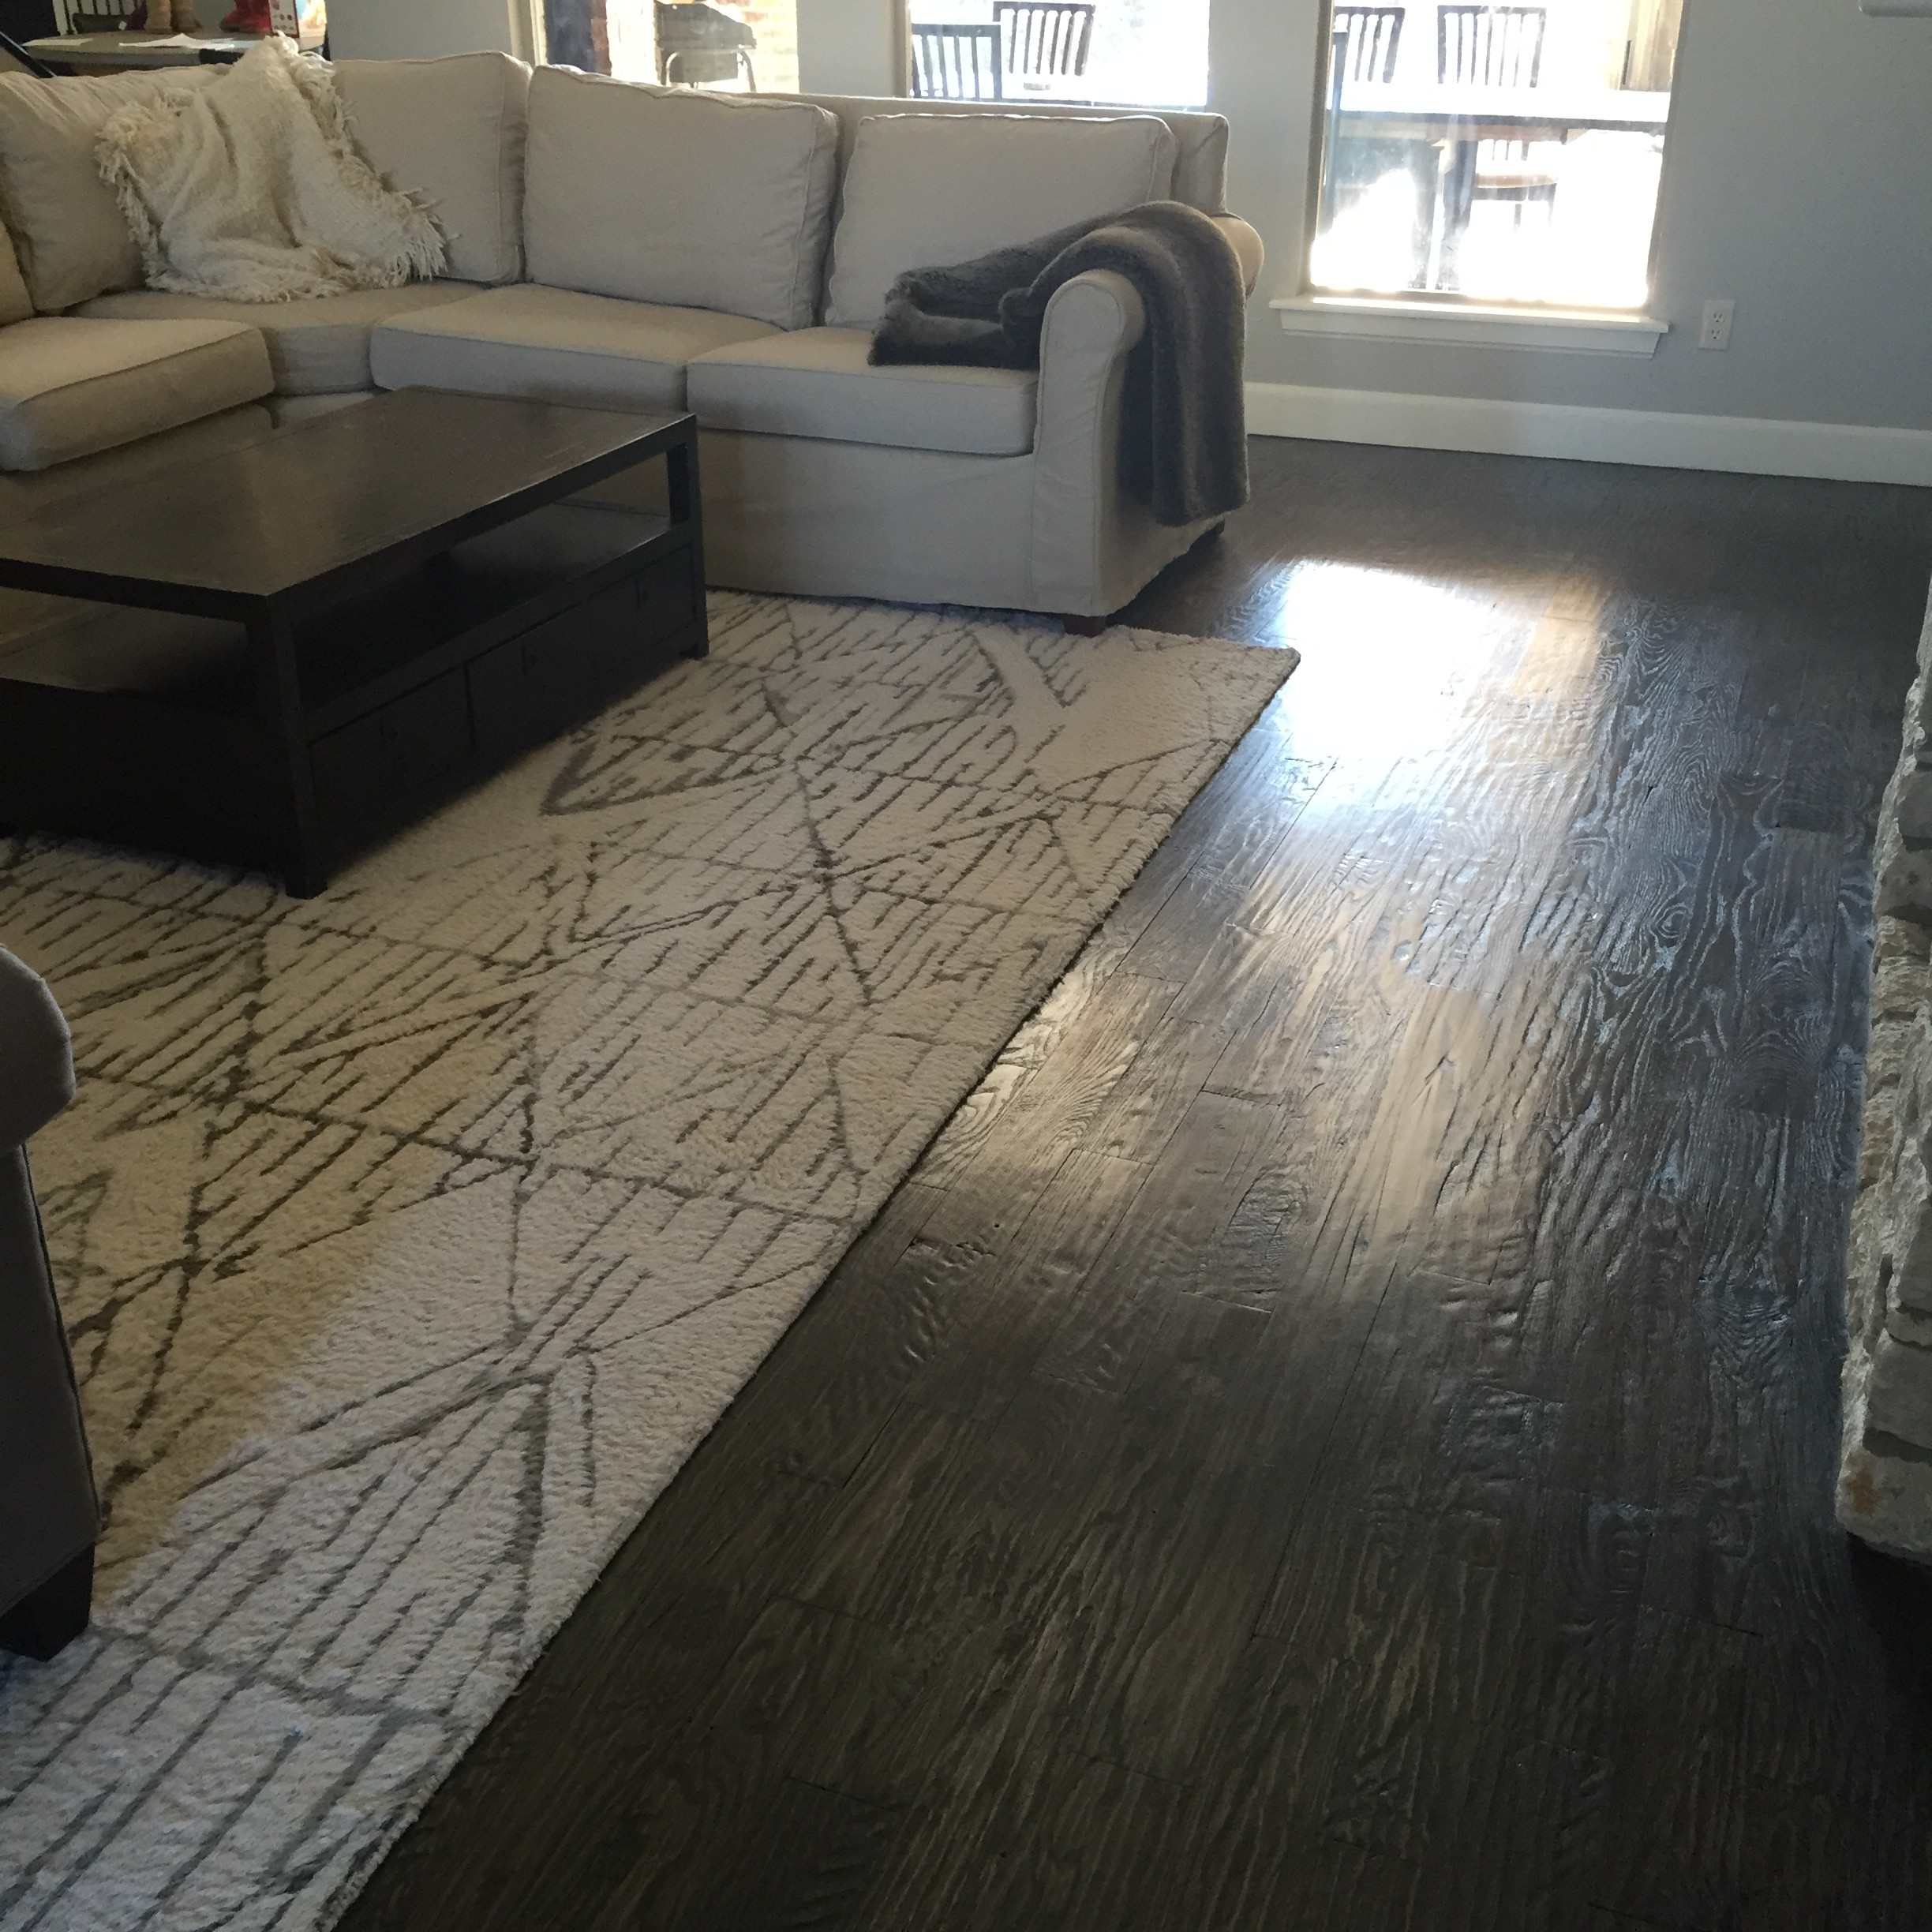 hardwood floor refinishing okc of sooner hardwood floorssooner hardwood floors hardwood sand and in sooner hardwood floorssooner hardwood floors hardwood sand and finish company